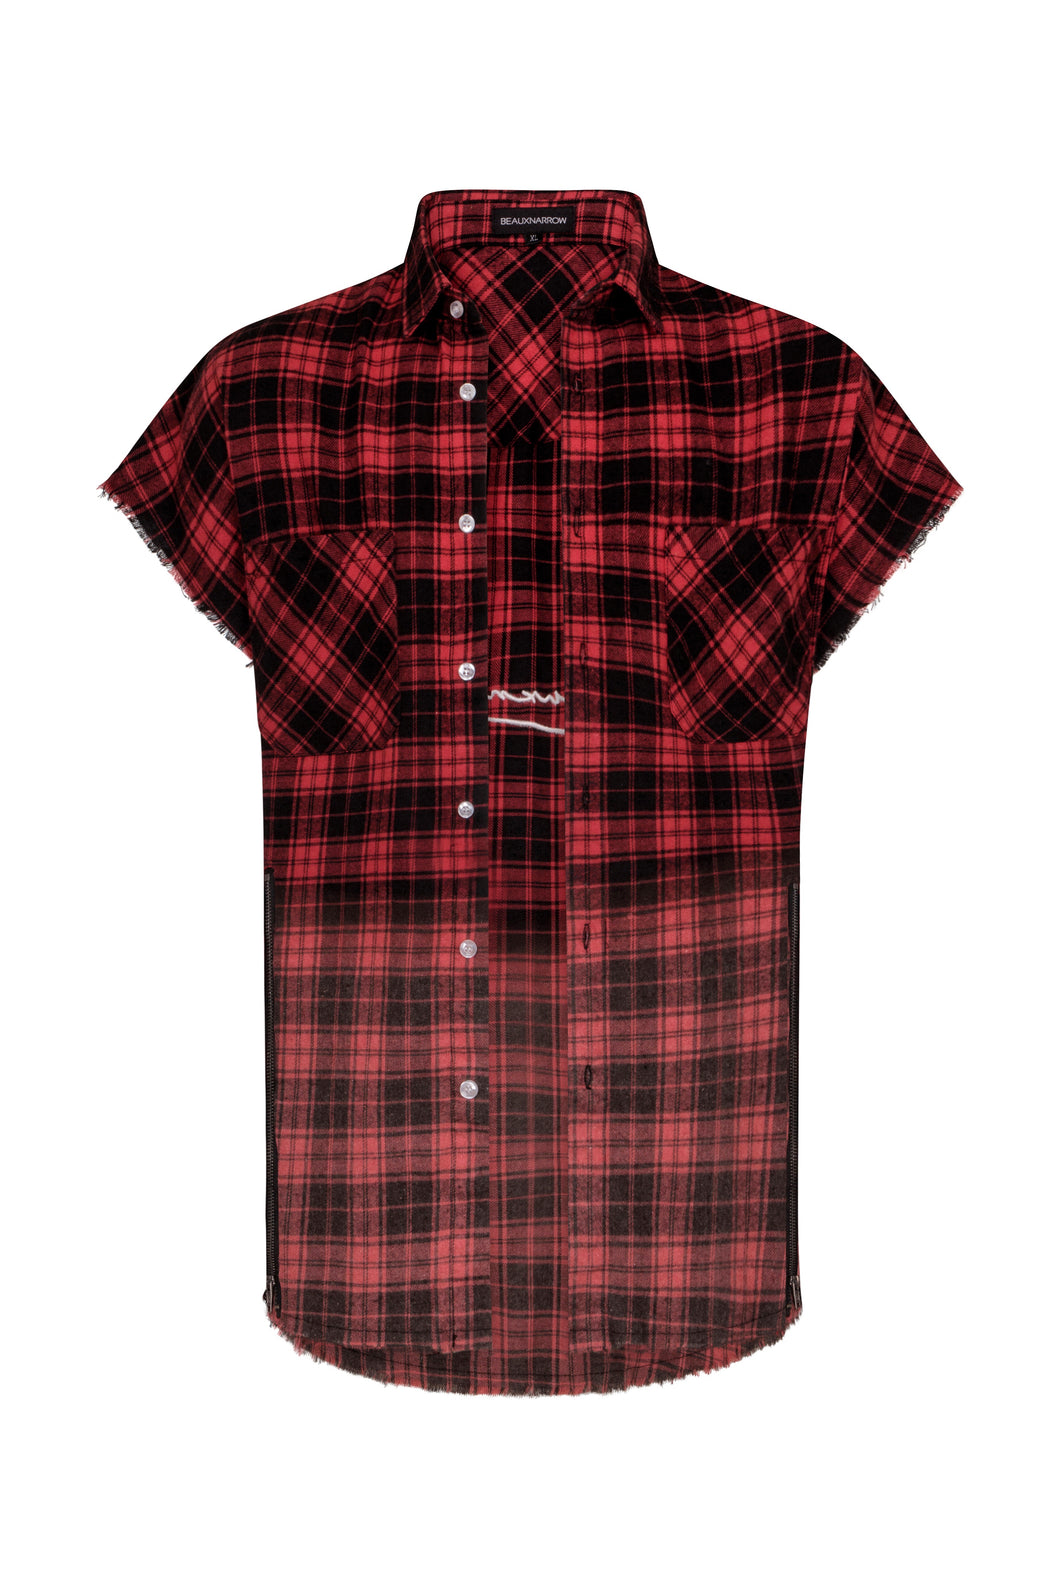 OVERSIZED PLAID SLEEVELESS SHIRT - RED/BLACK